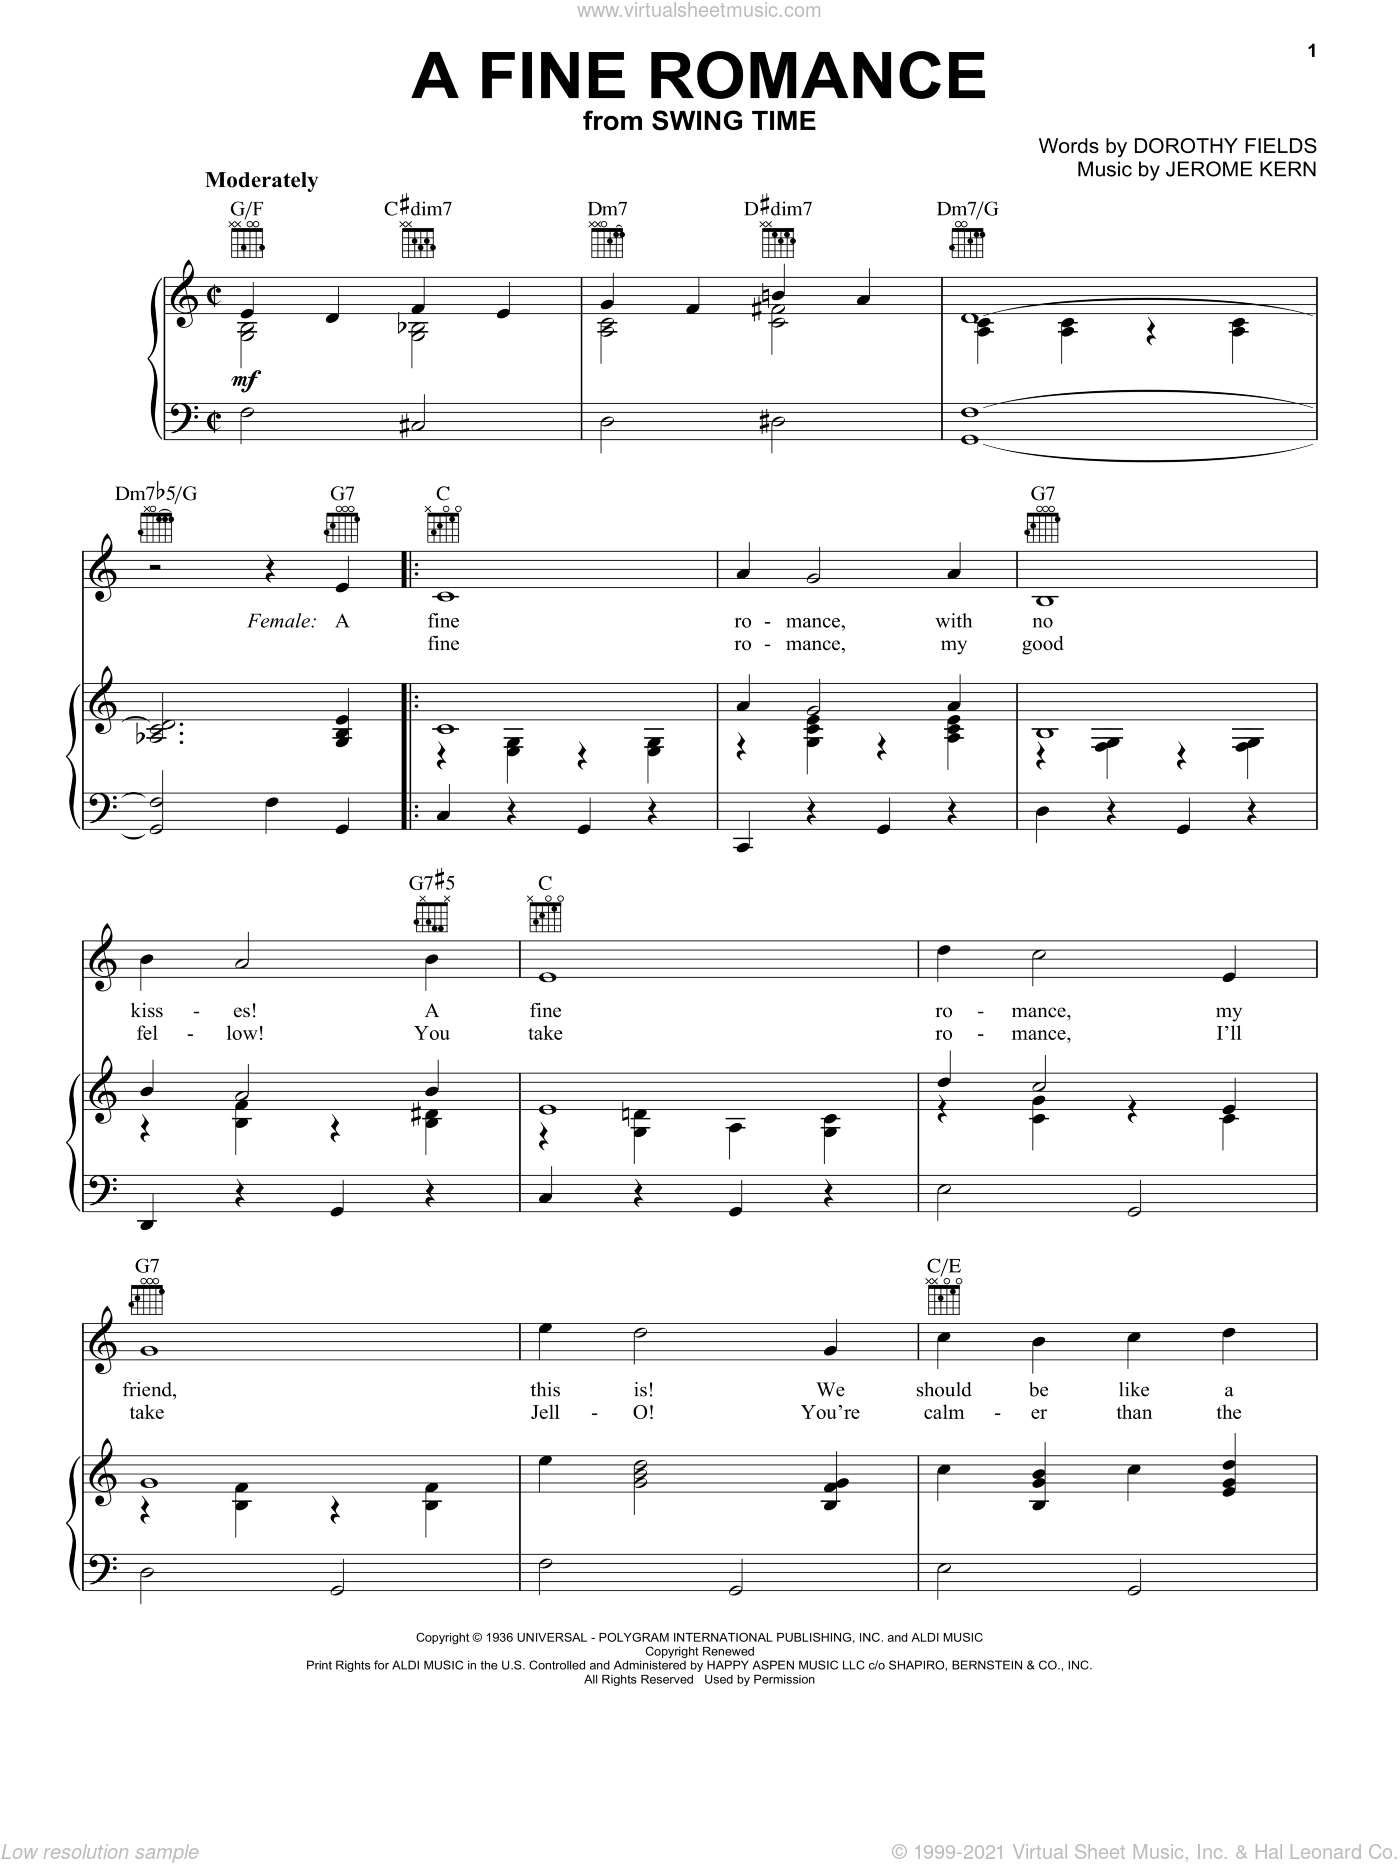 A Fine Romance sheet music for voice, piano or guitar by Dorothy Fields